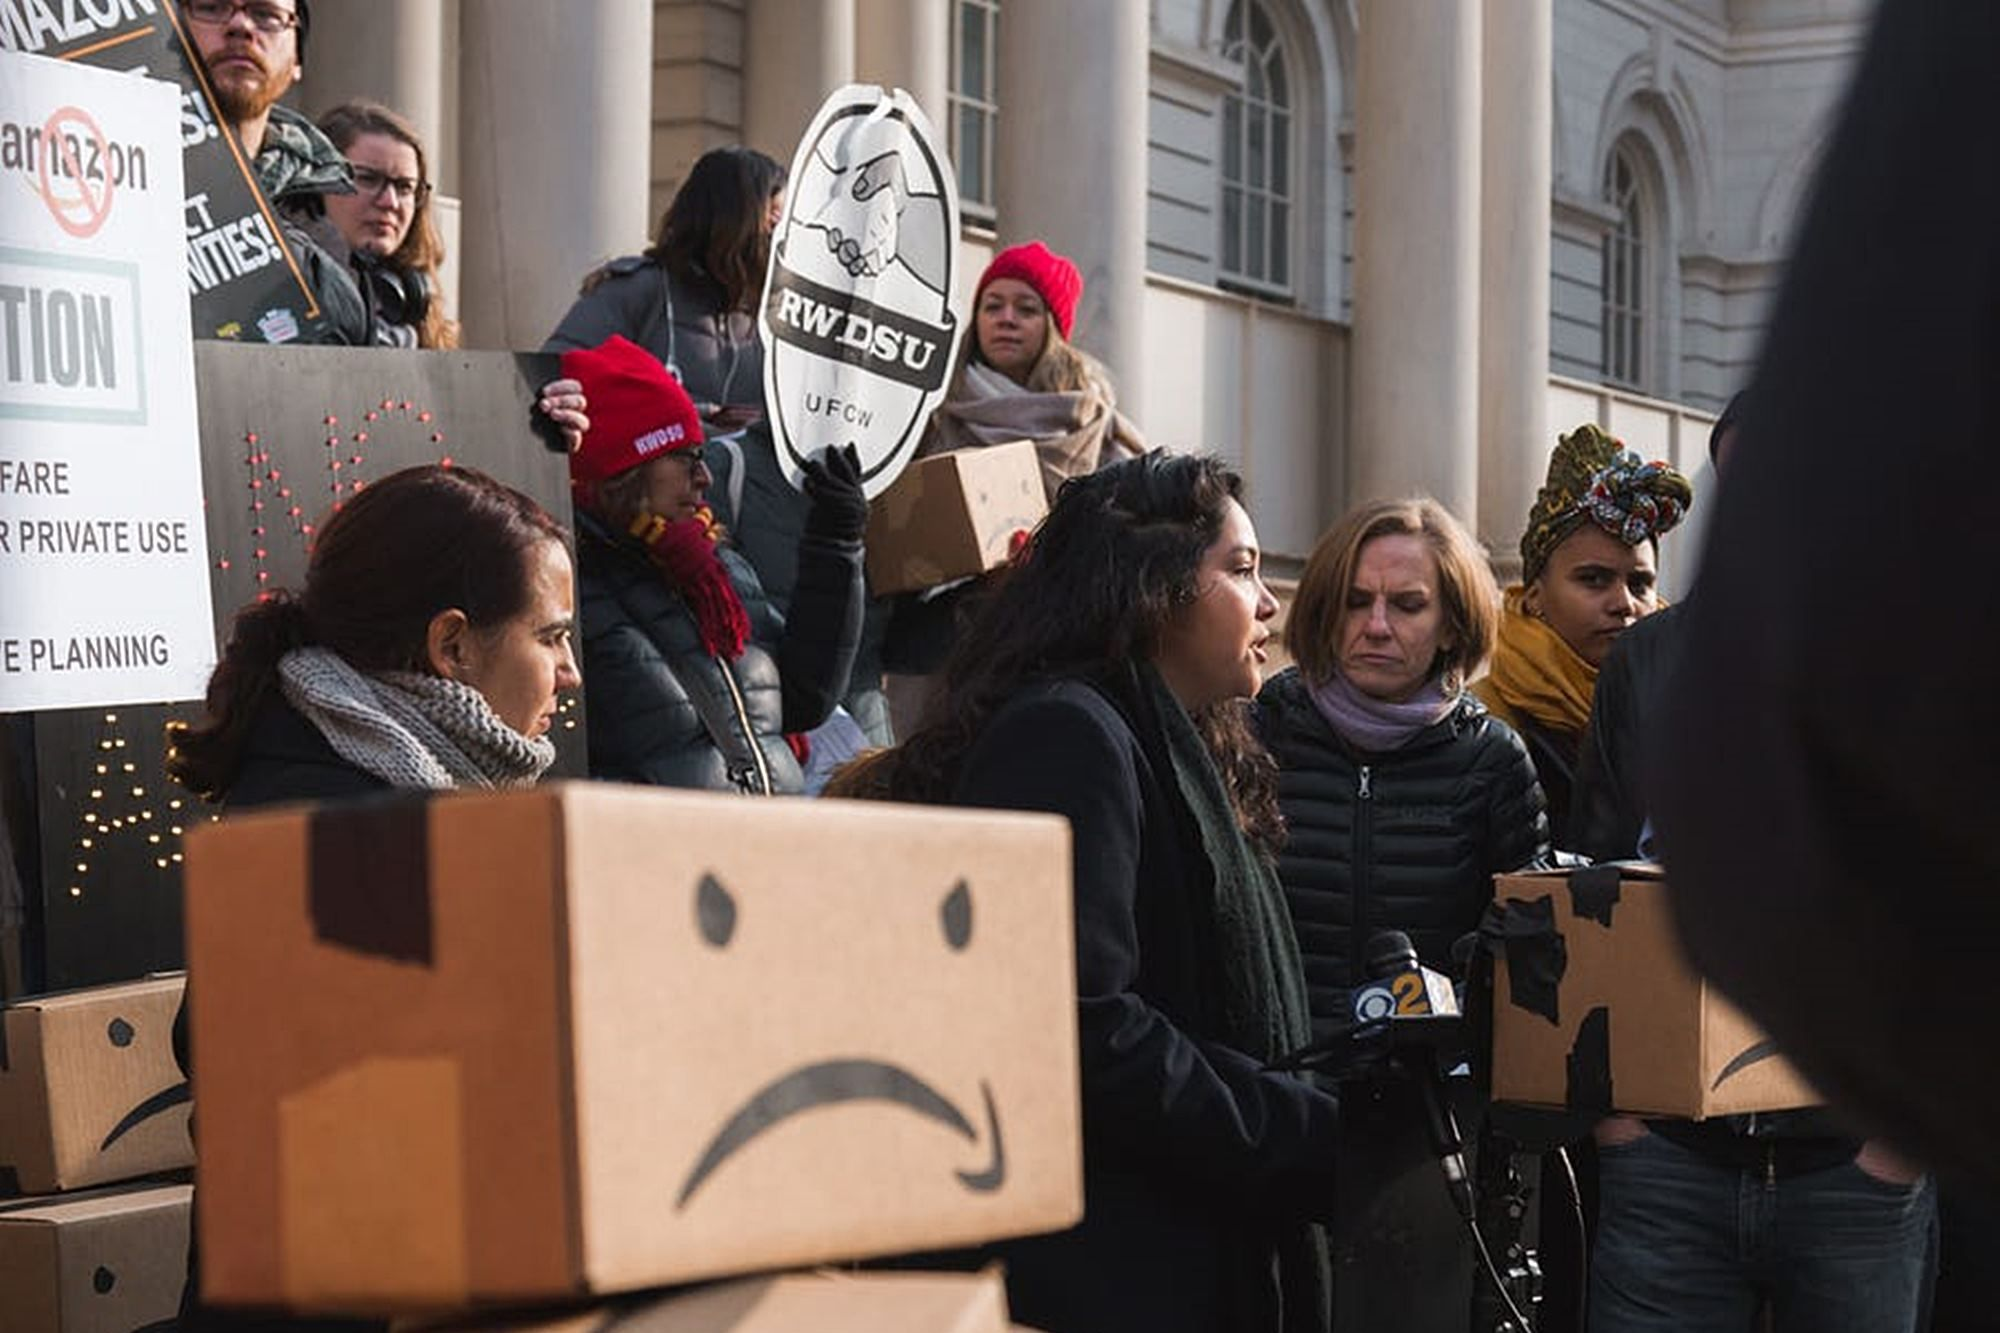 An Author Changed the Cover of His Book on Amazon Into a Message Urging Amazon Workers to Unionize